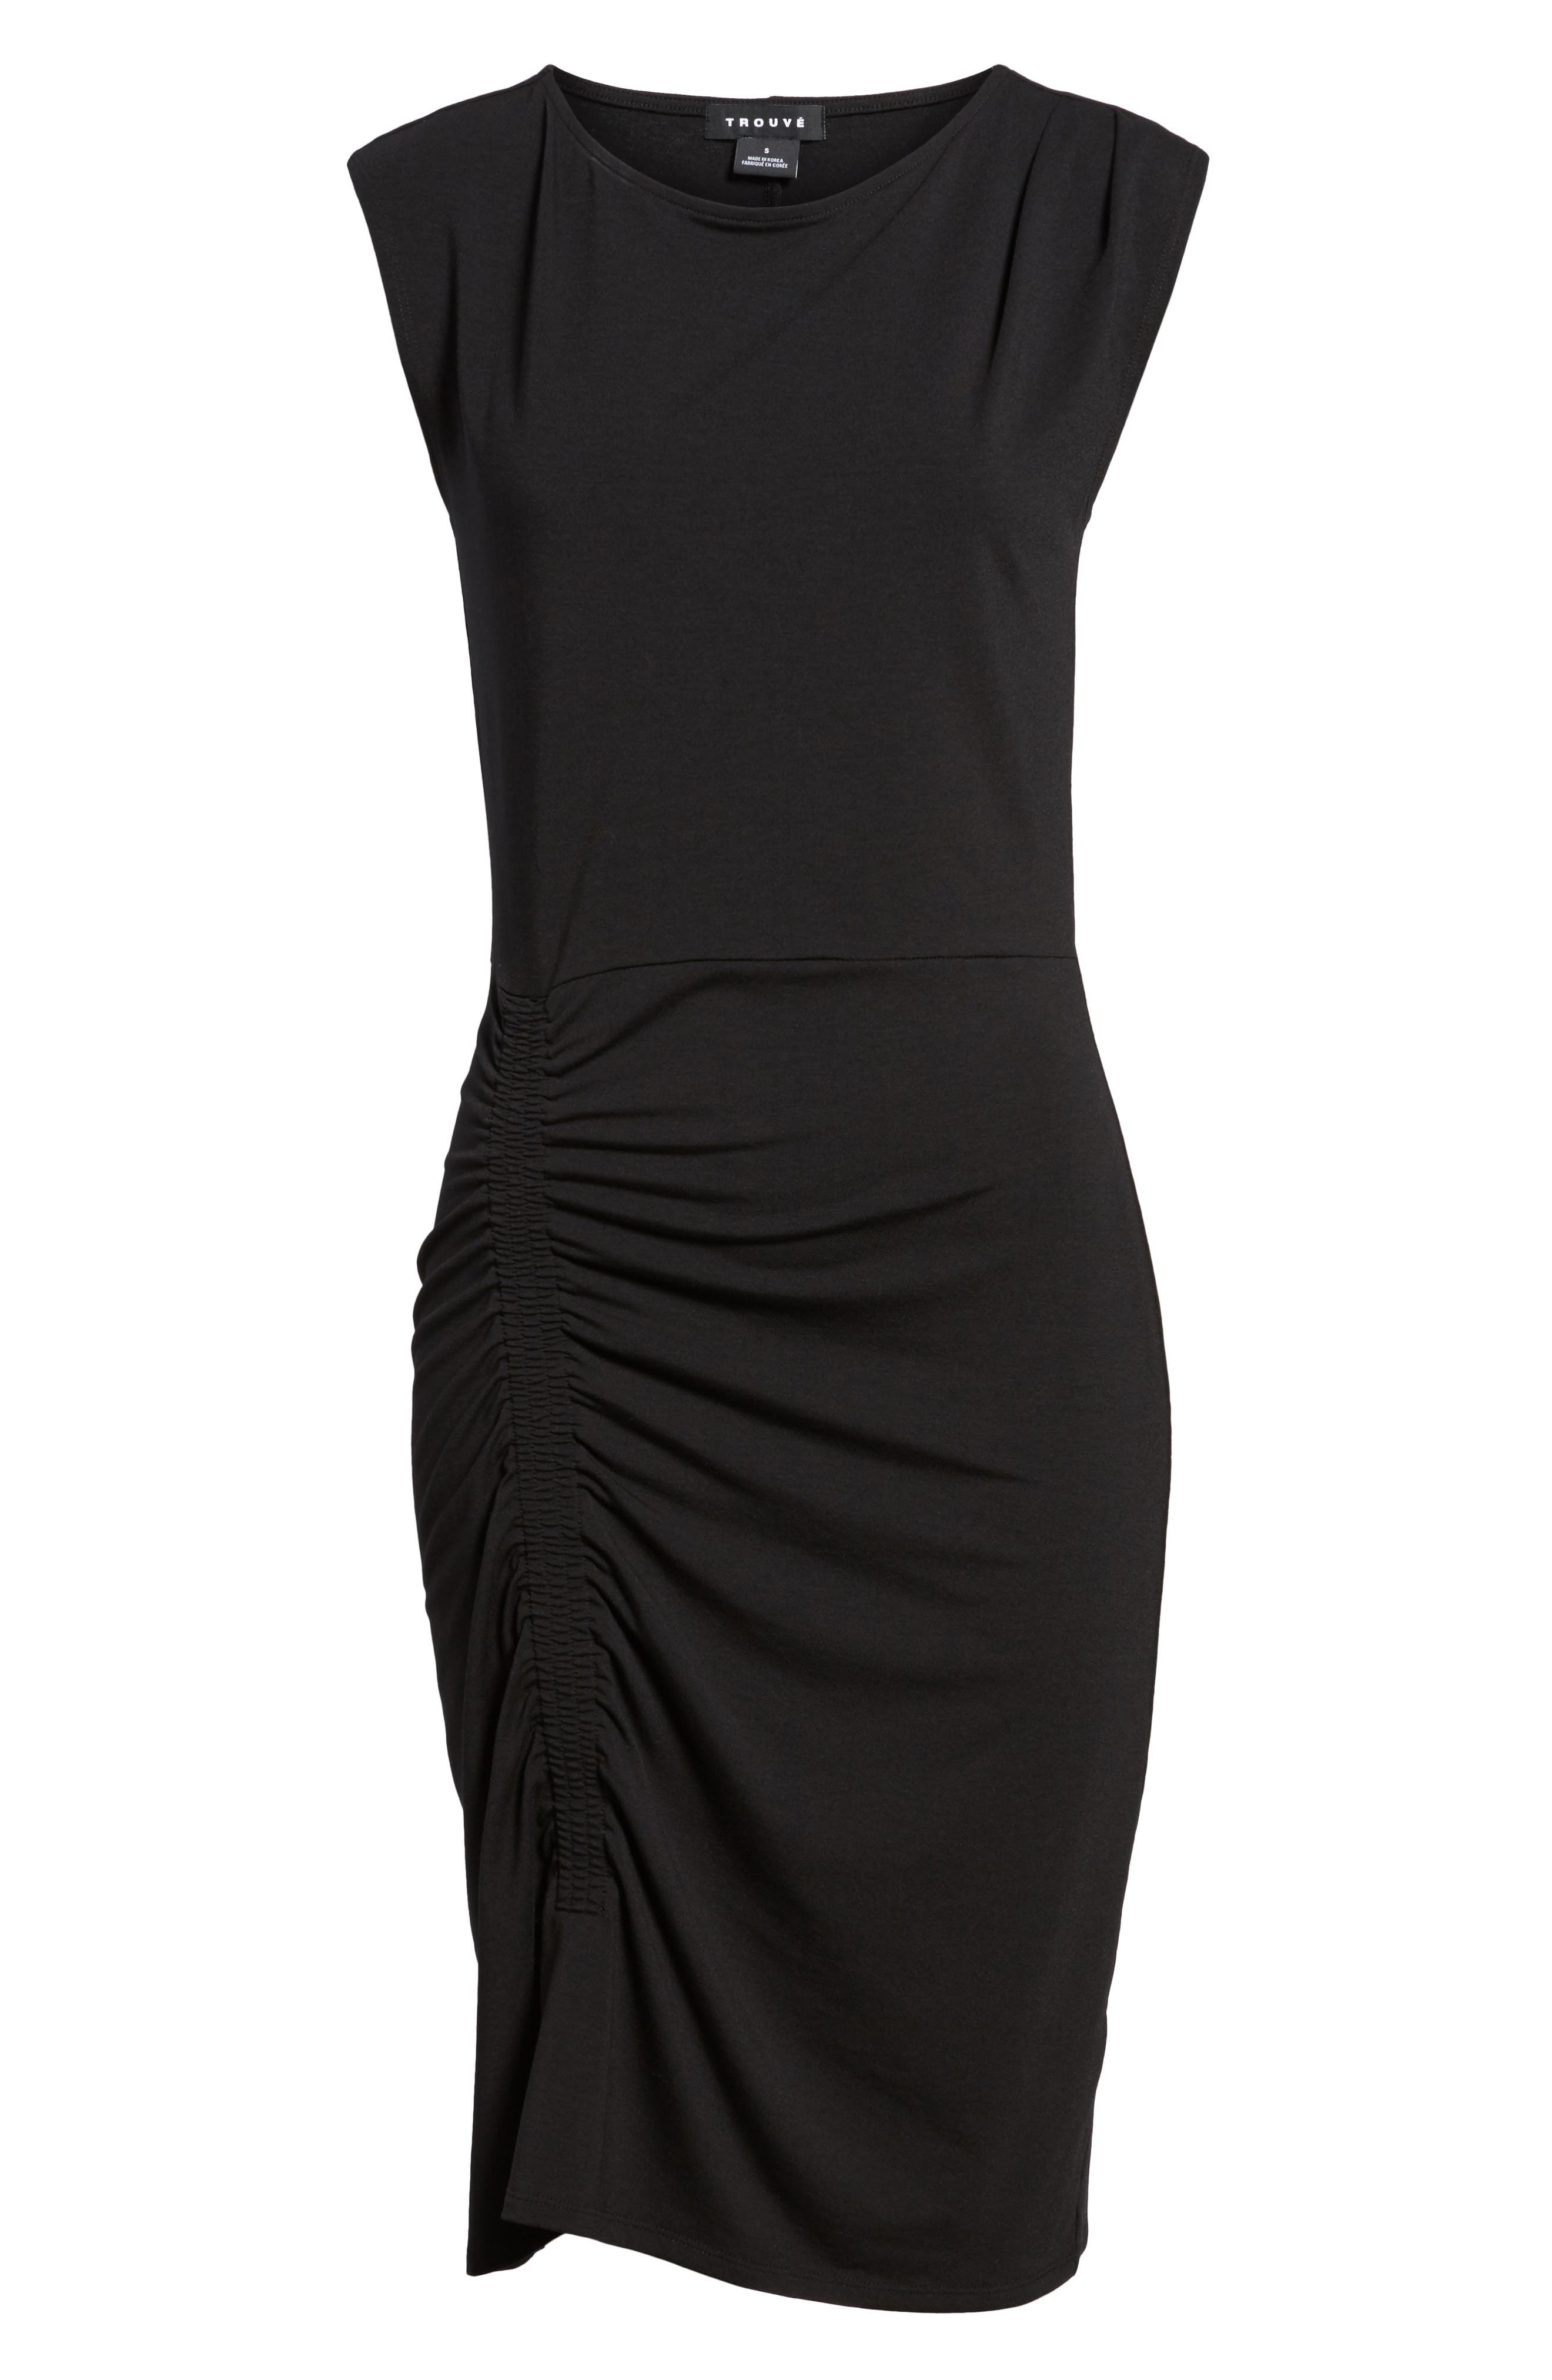 Ruched Knit Dress,                             Alternate thumbnail 7, color,                             001